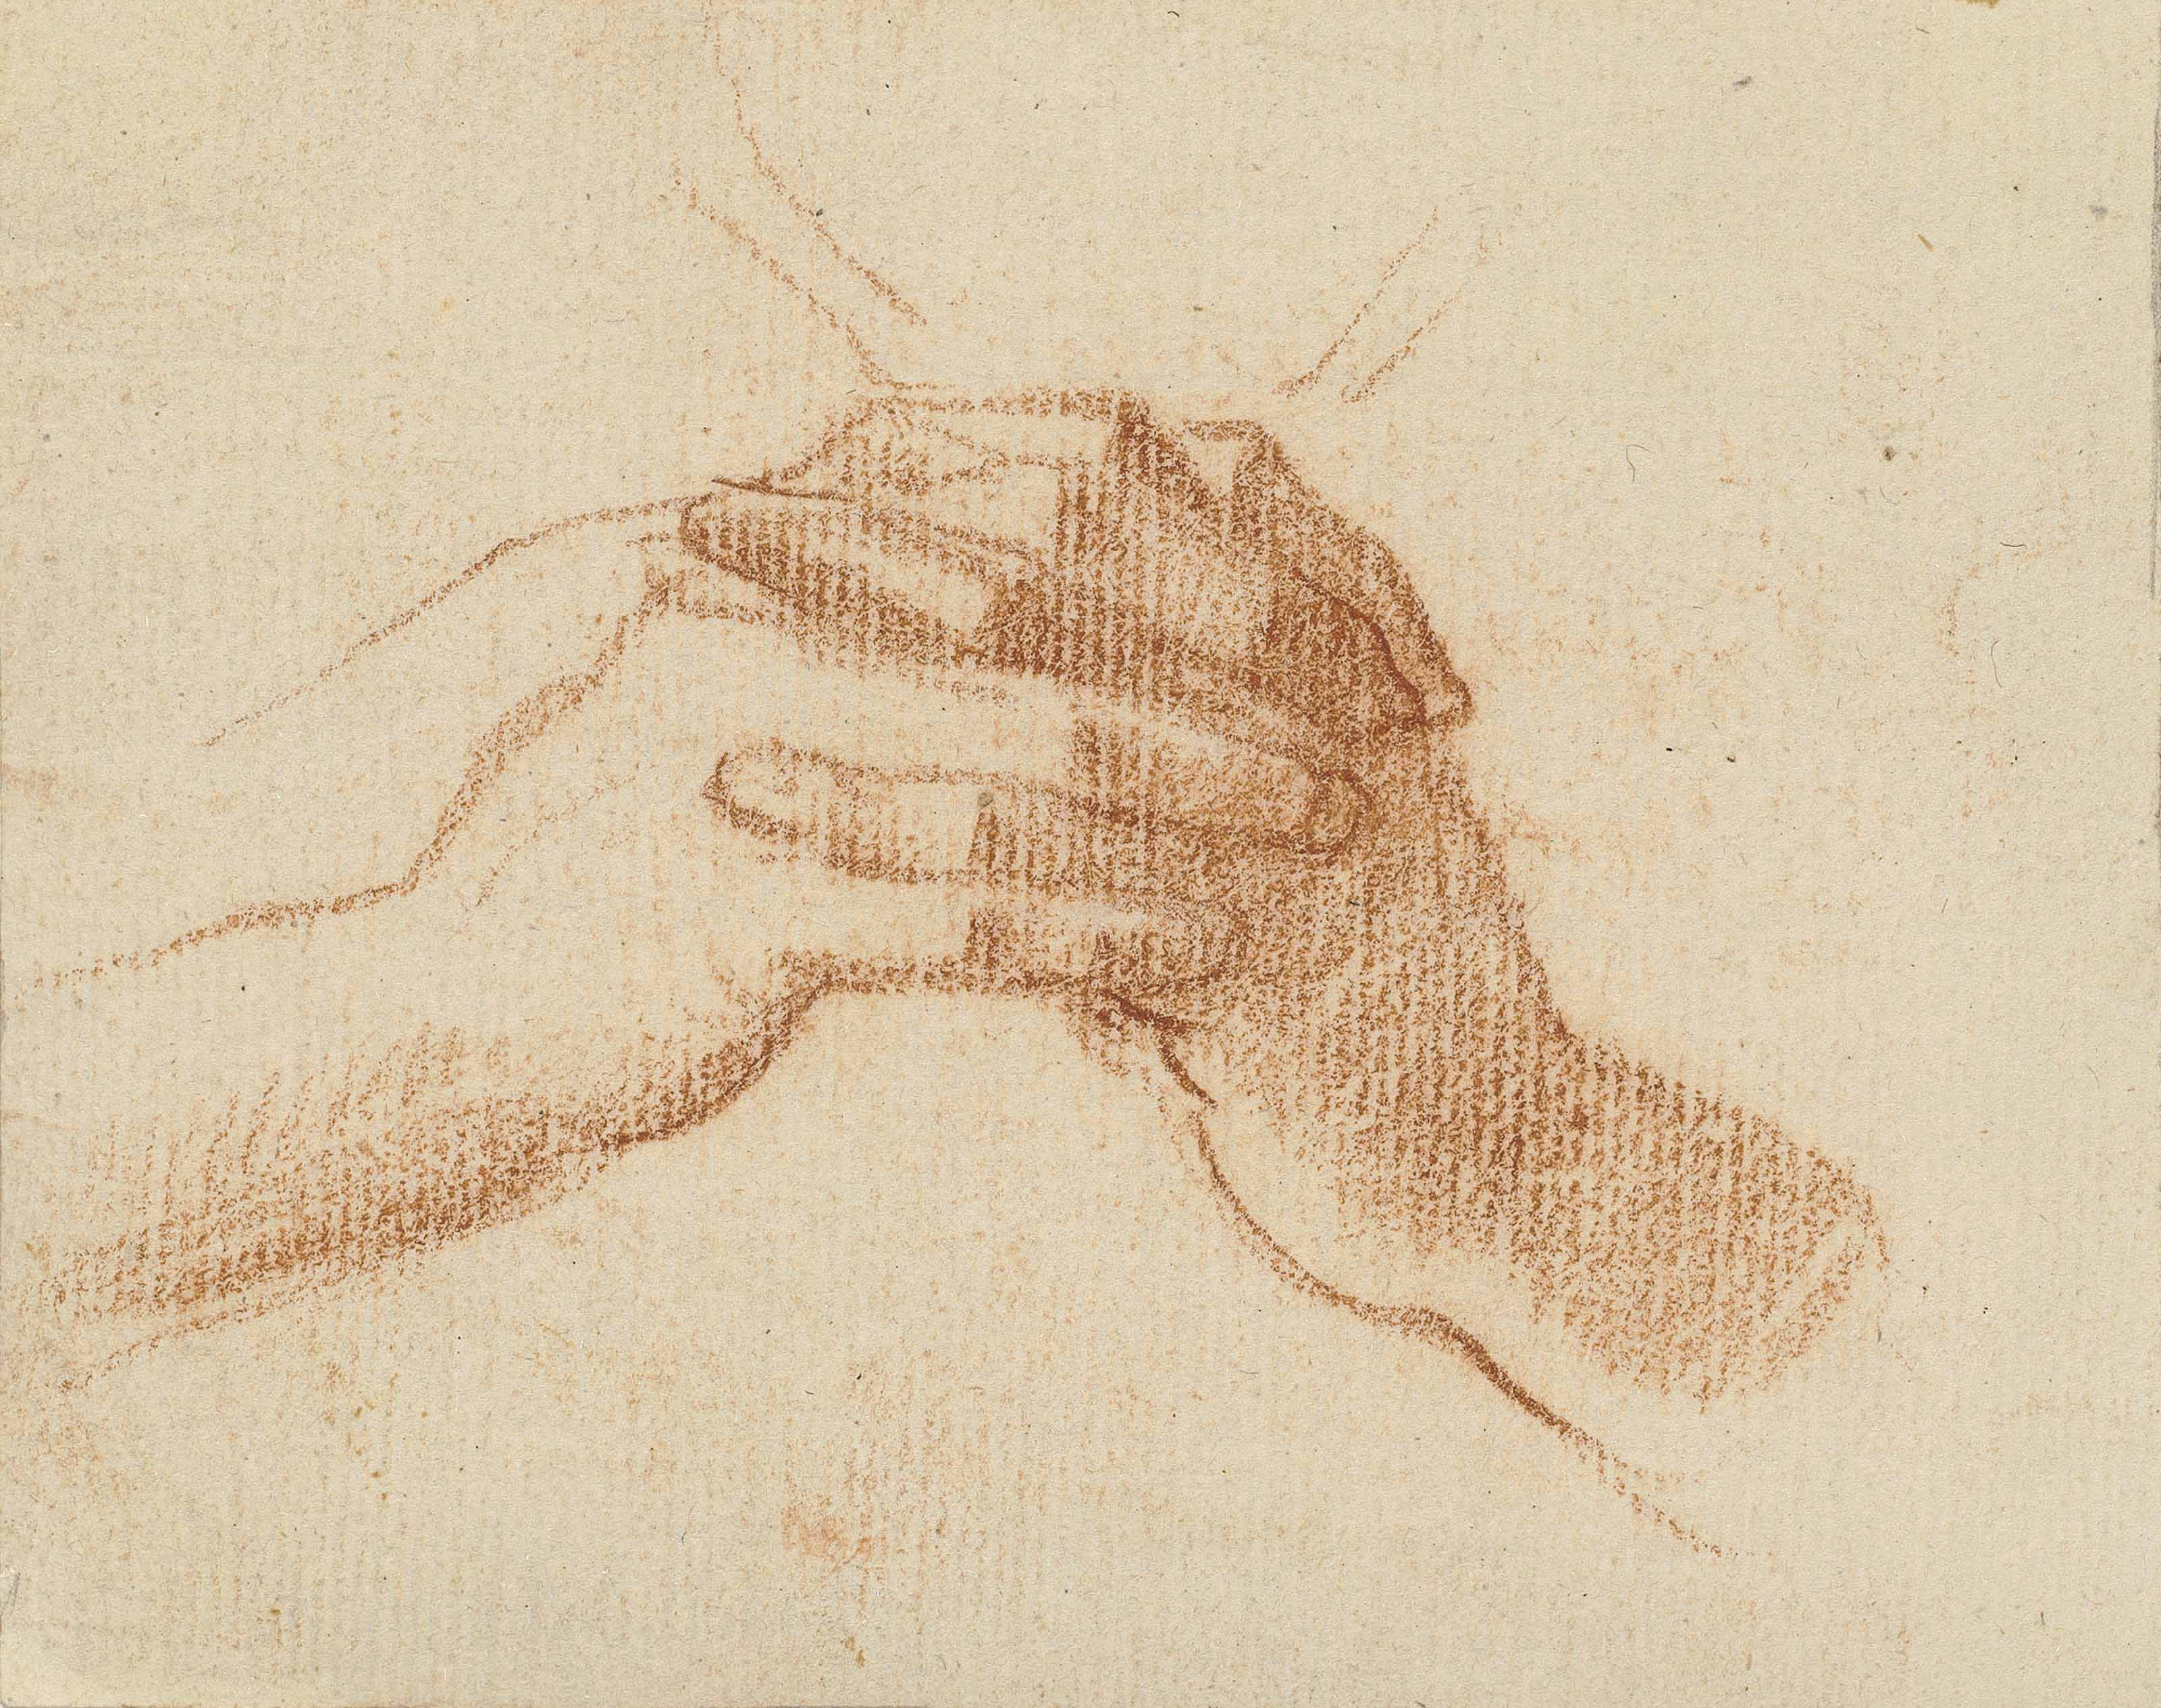 Study of clasped hands